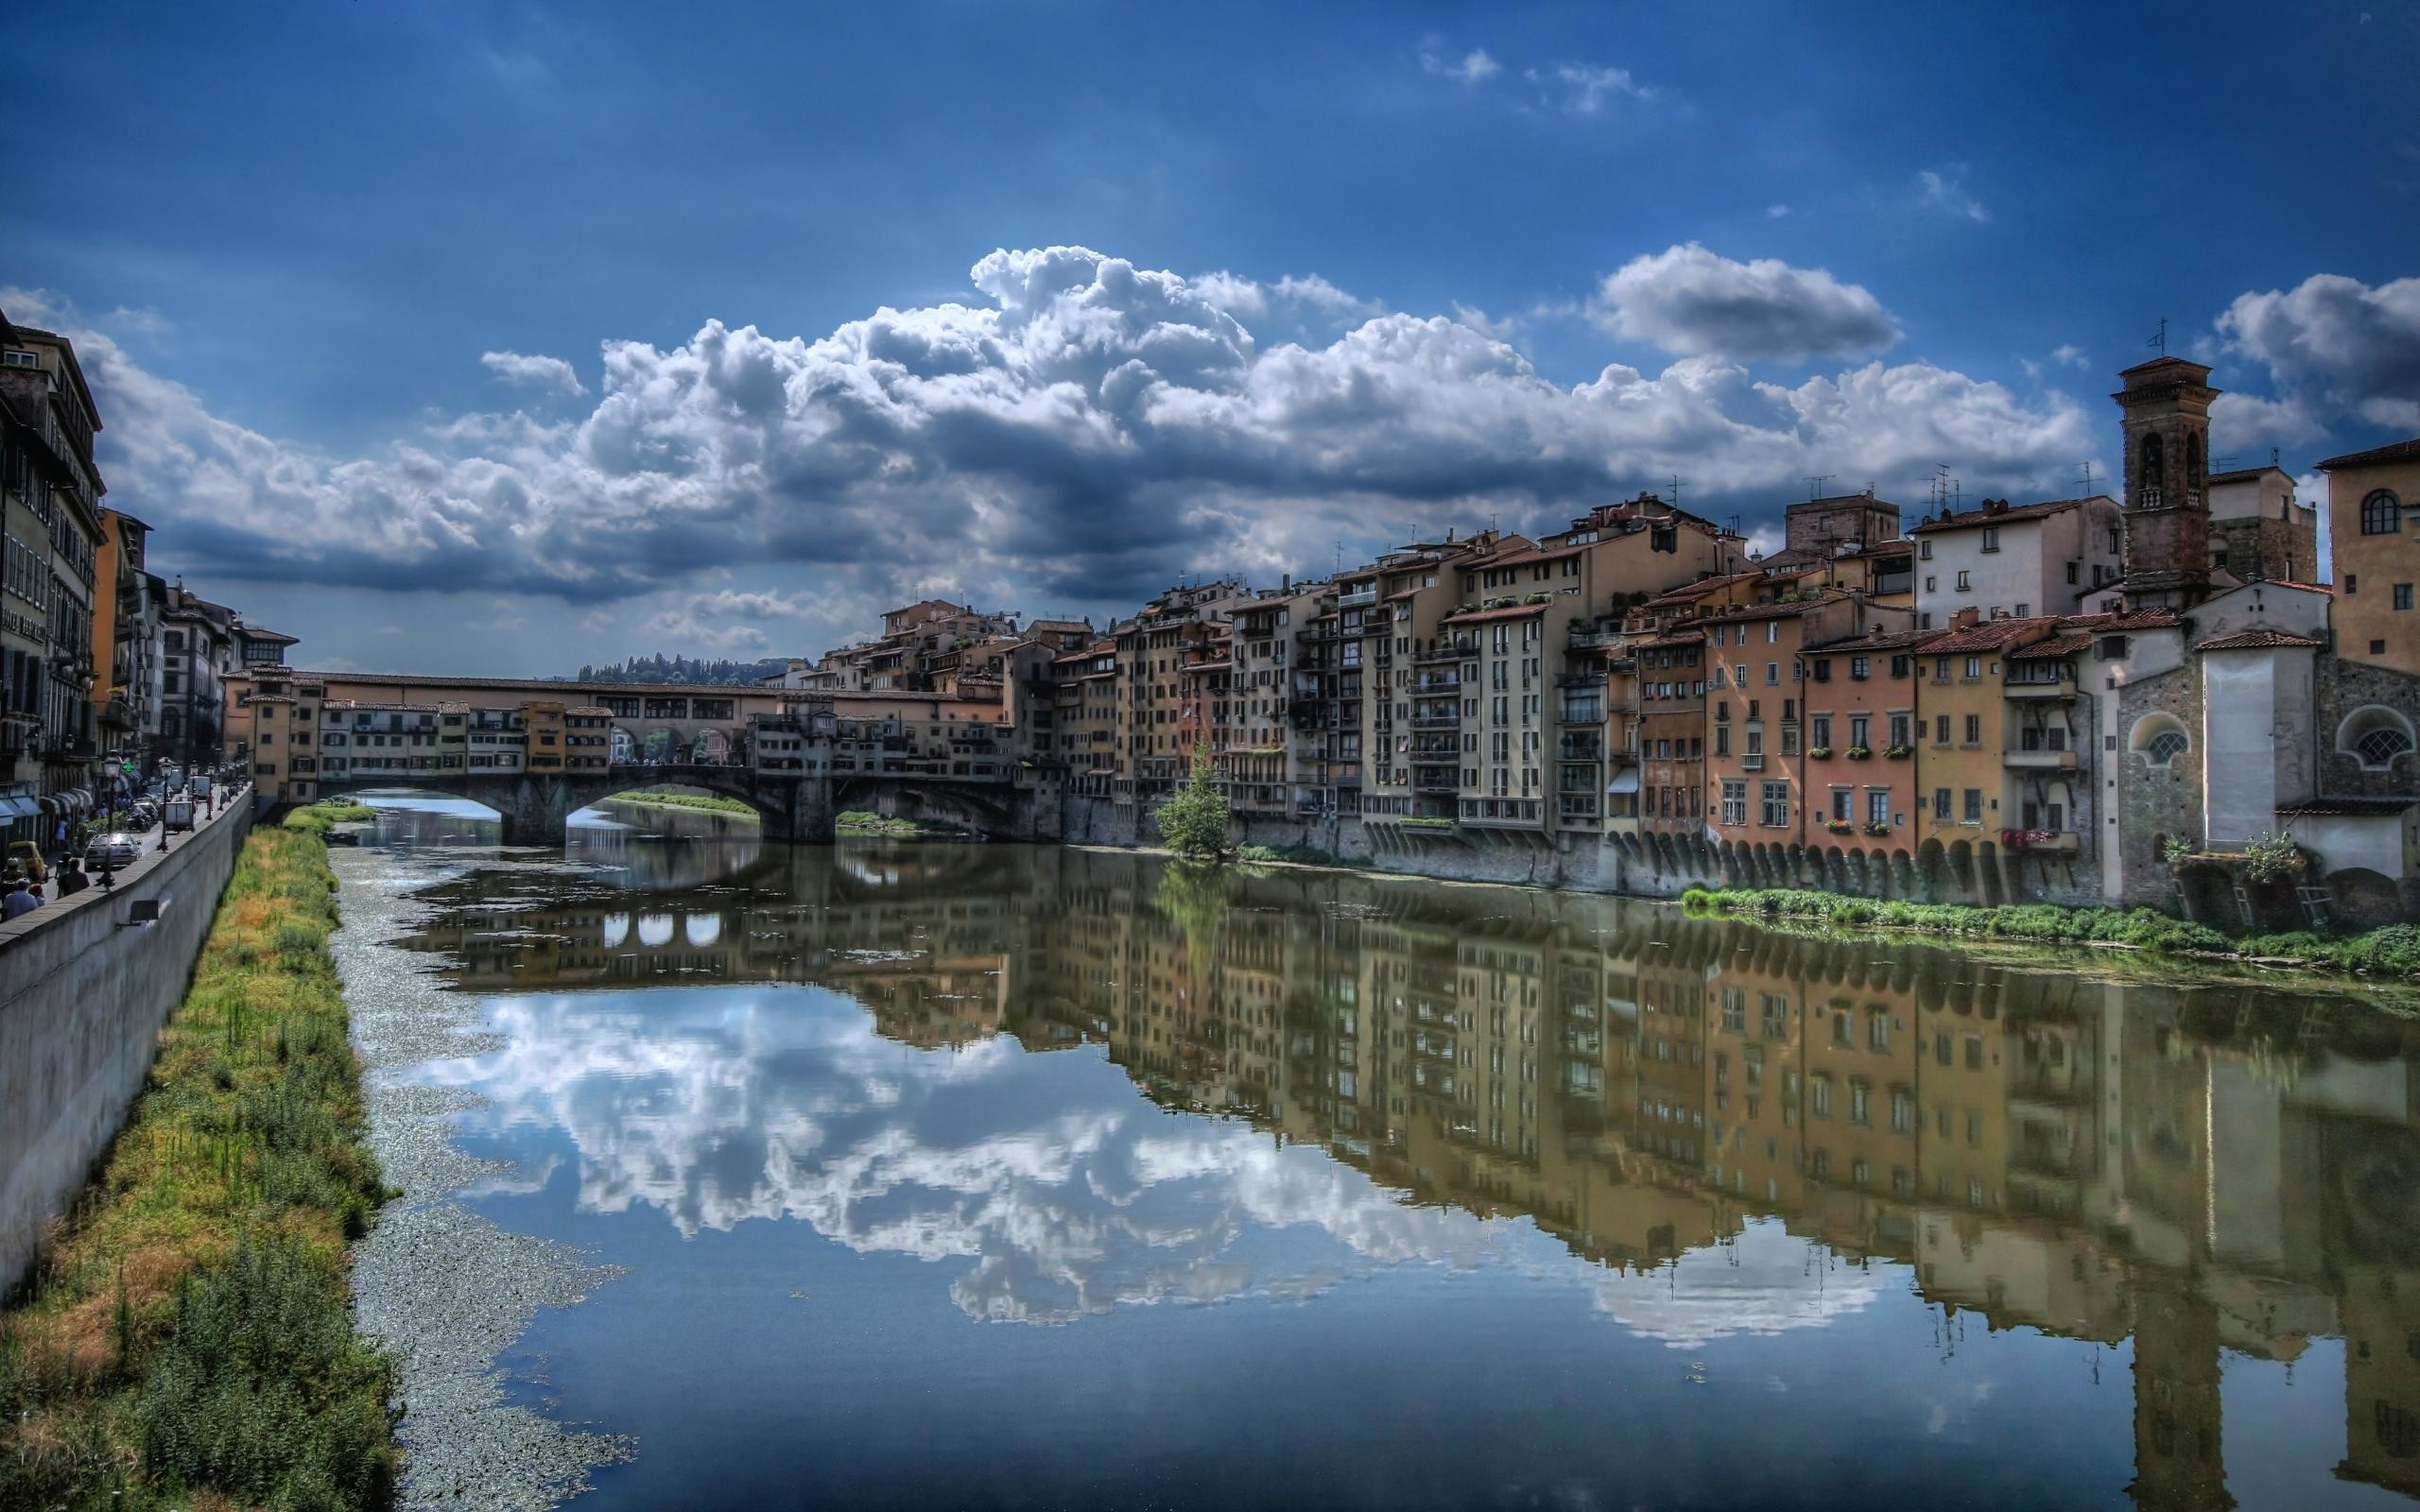 2560x1600 Ponte Vecchio in Florence